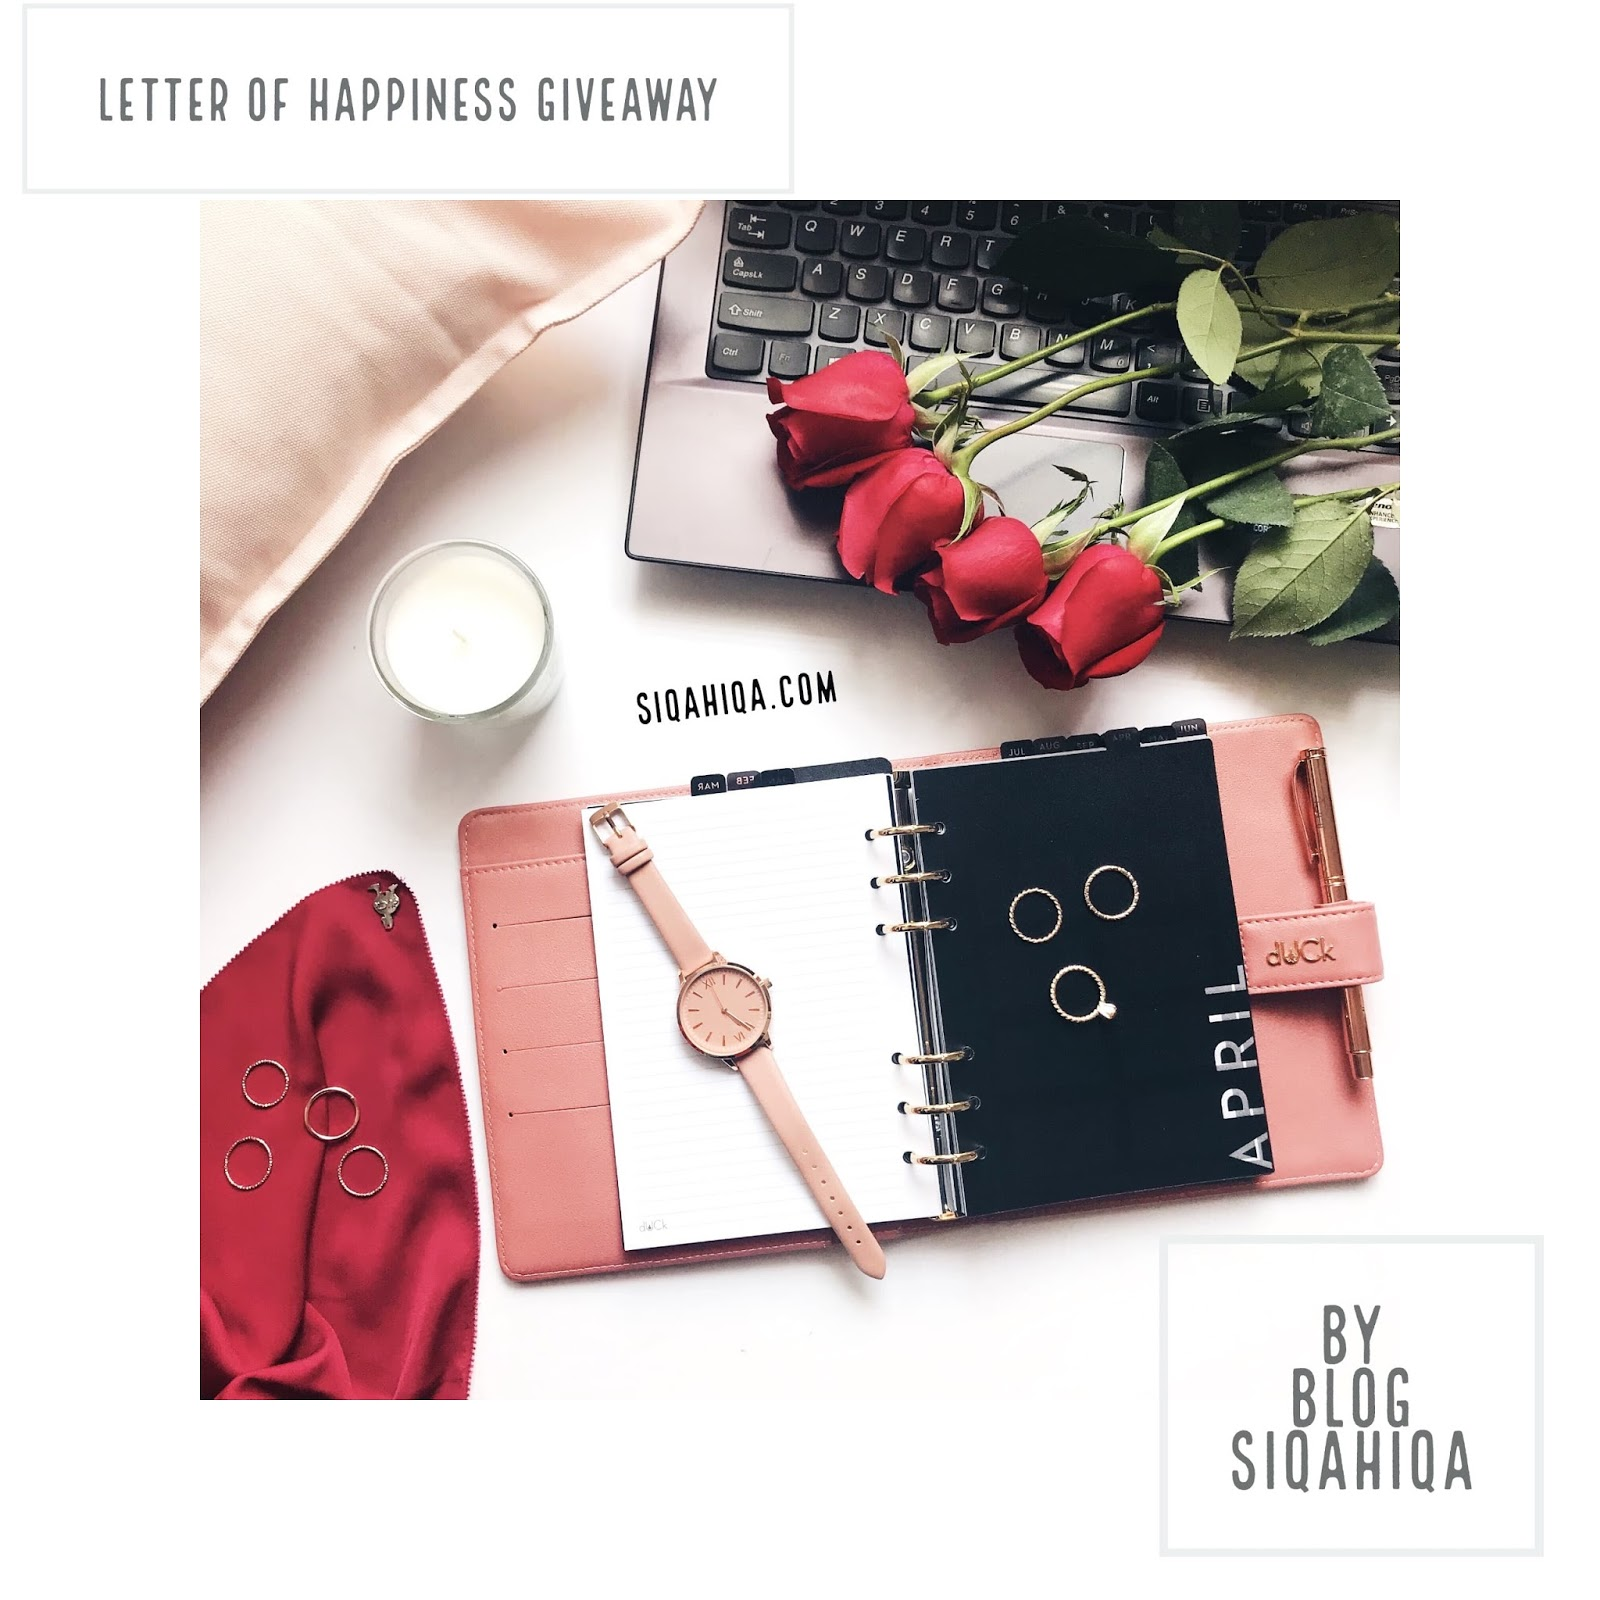 Letter of Happiness Giveaway by Blog Siqahiqa.